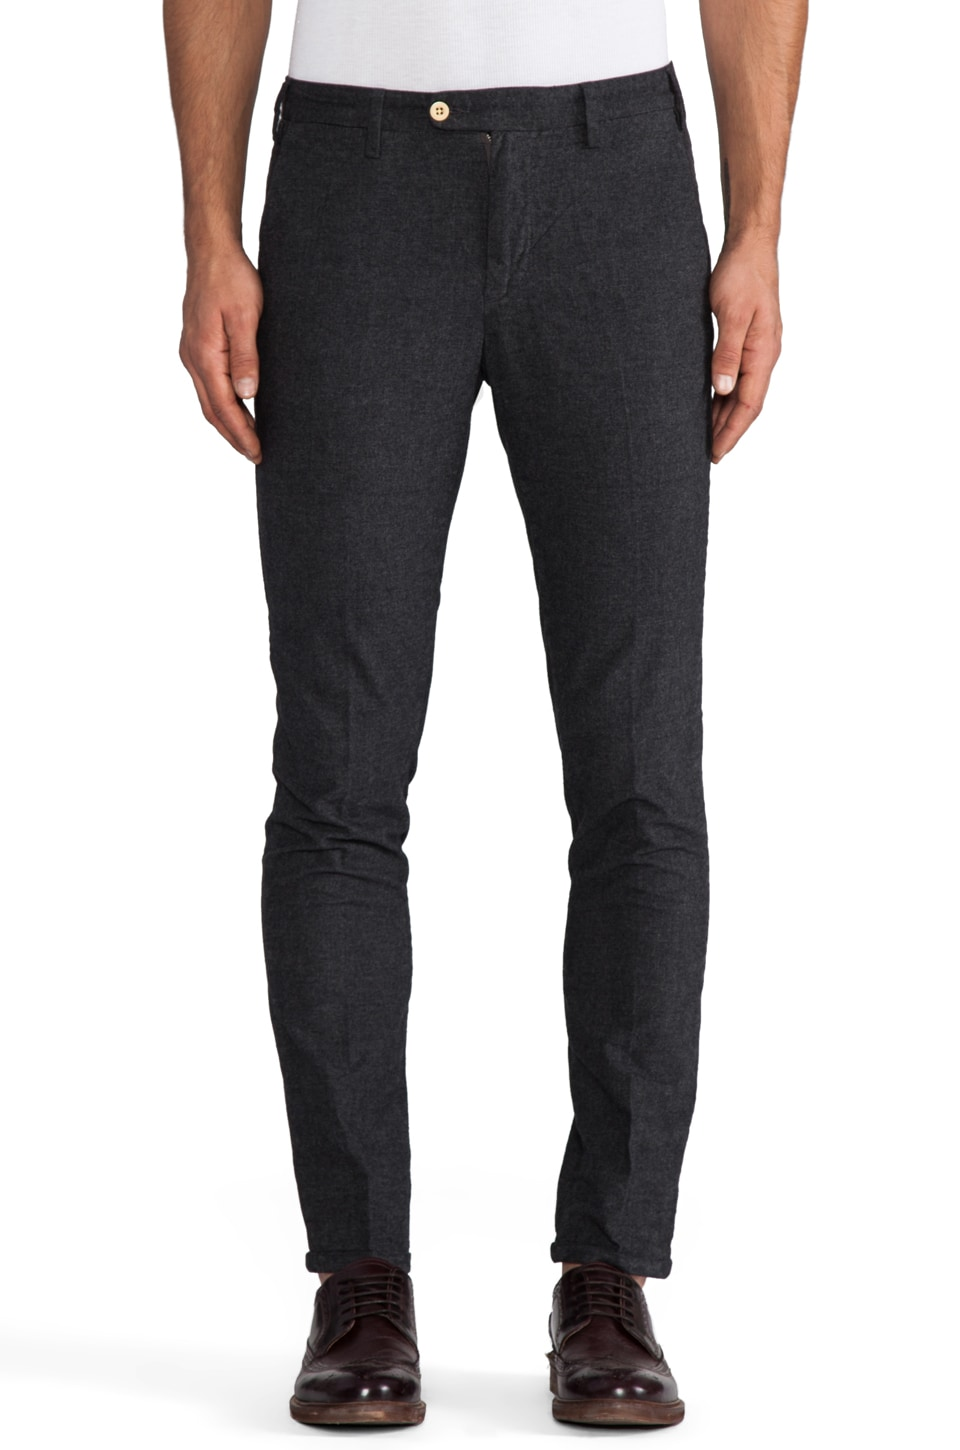 GANT Rugger Grandpa Pant in Charcoal Melange